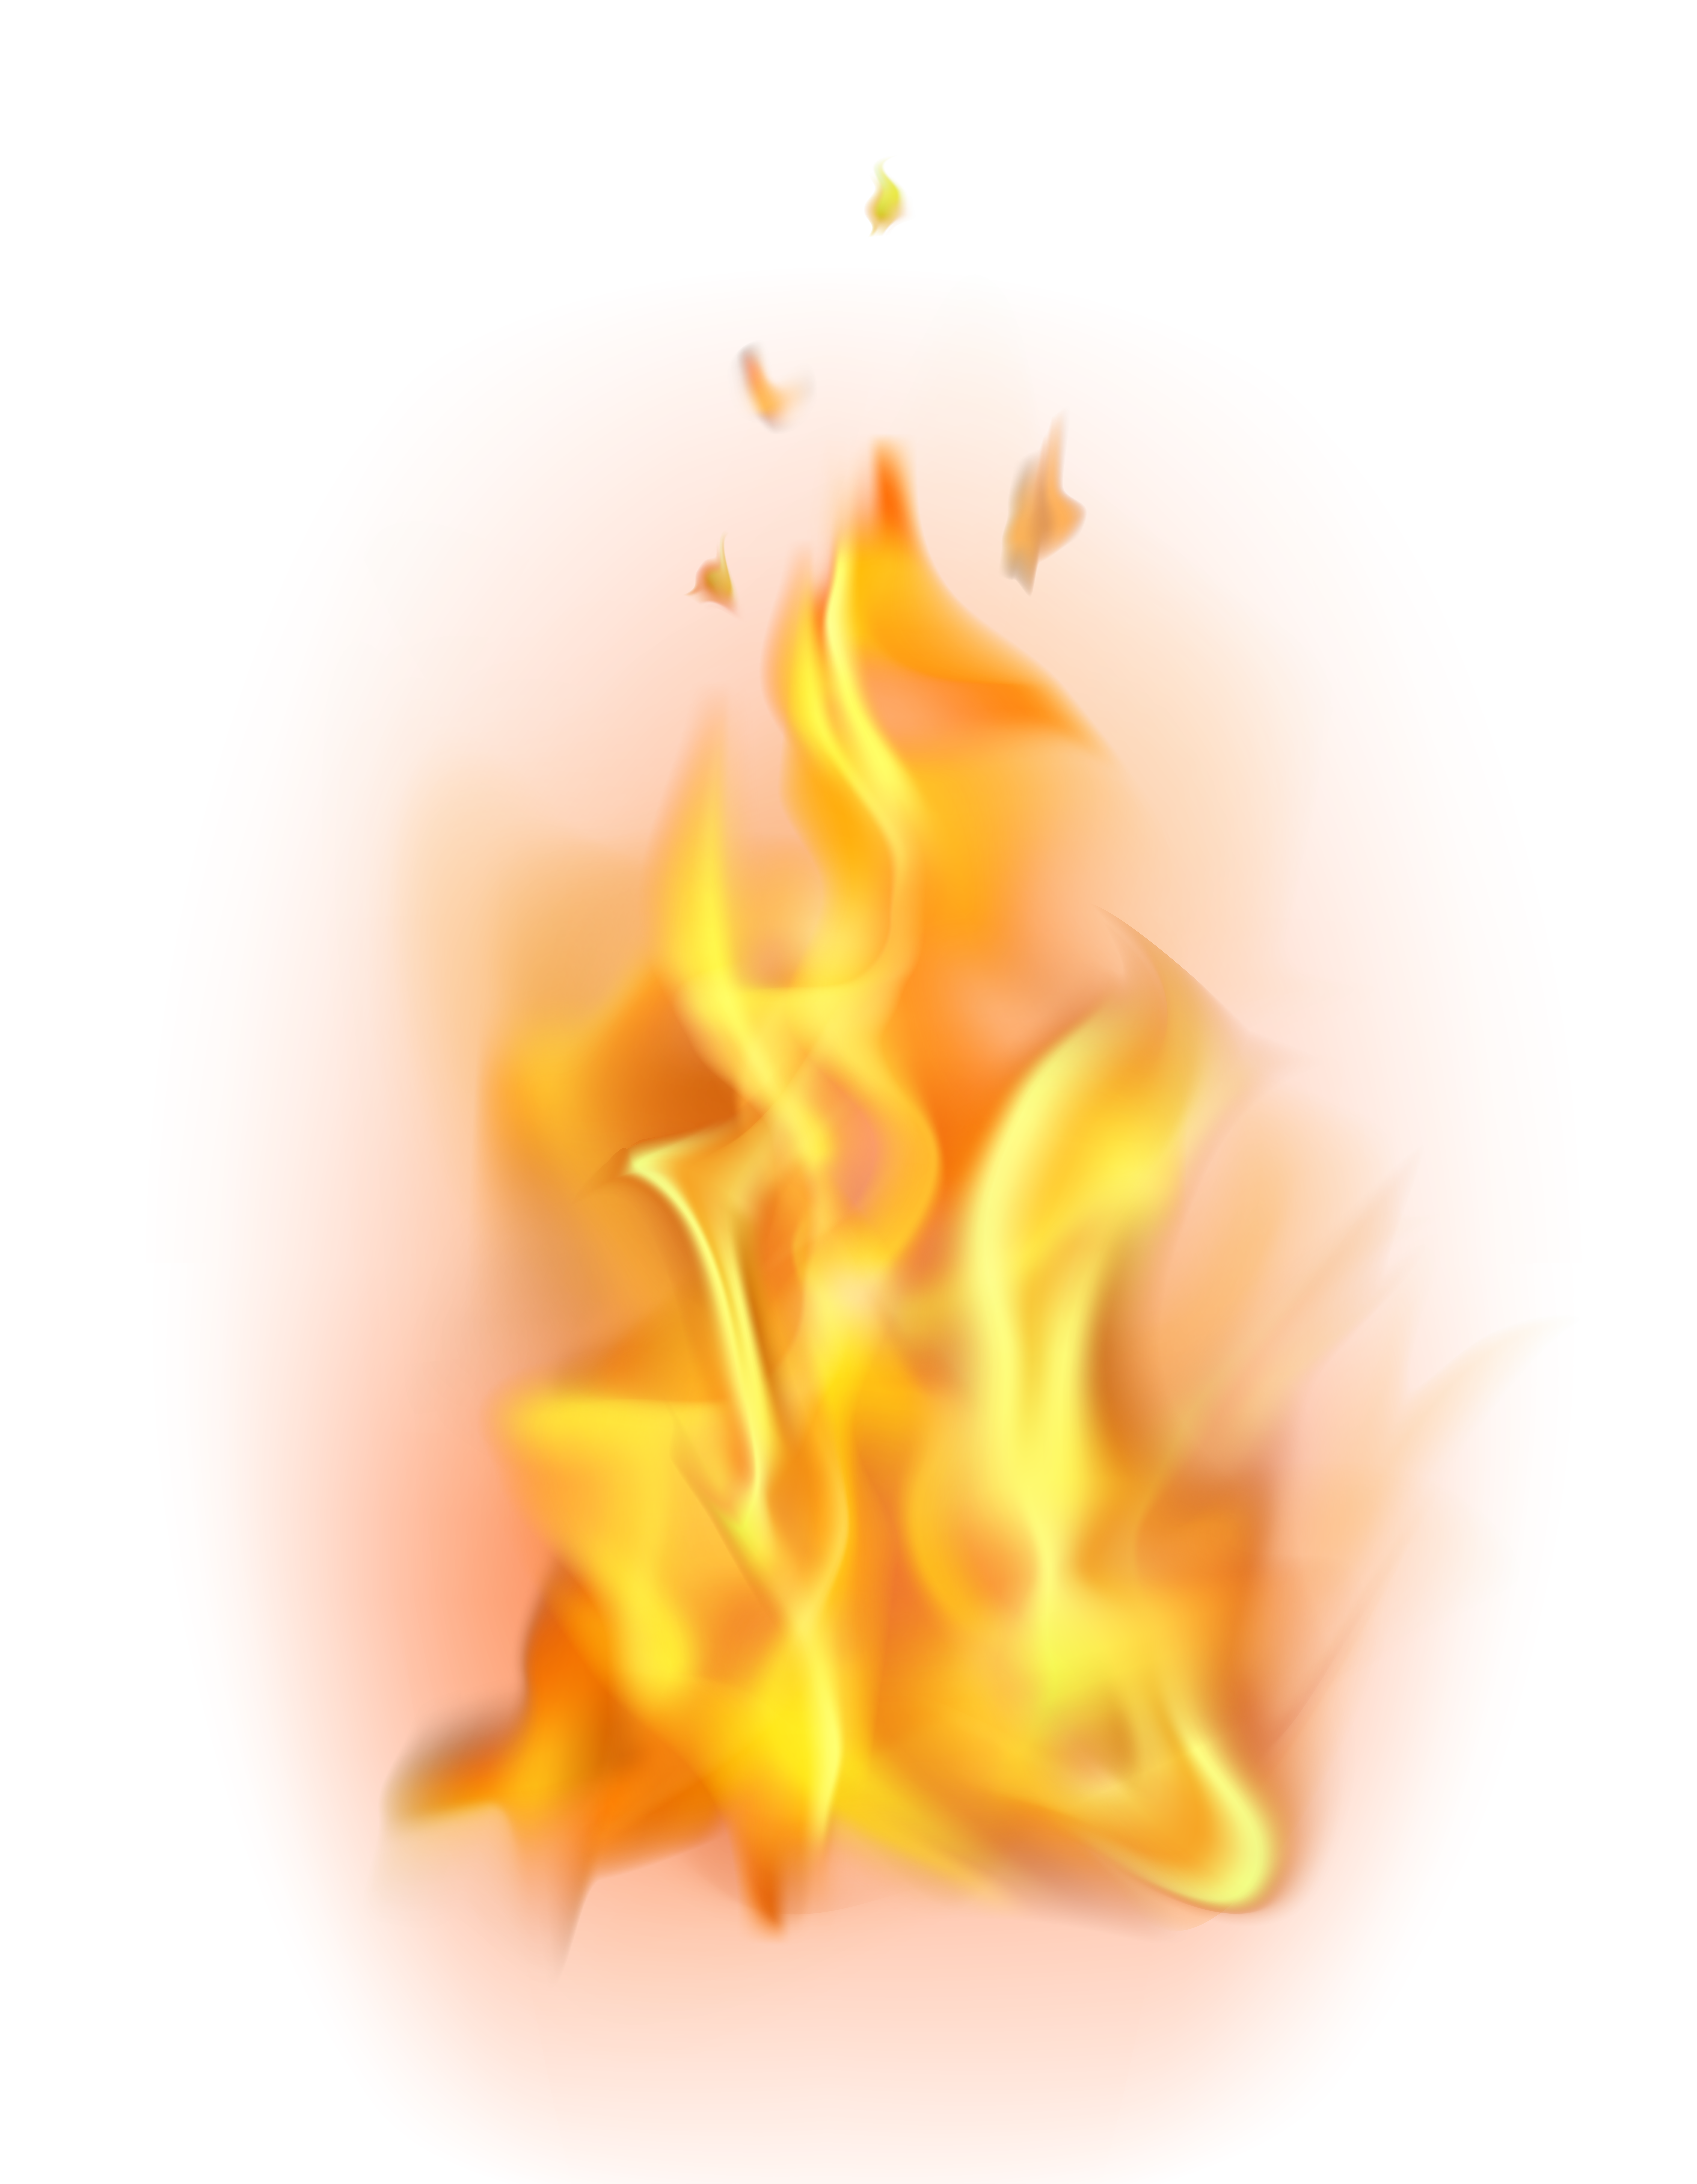 Flames clipart gold. Fire flame transparent png